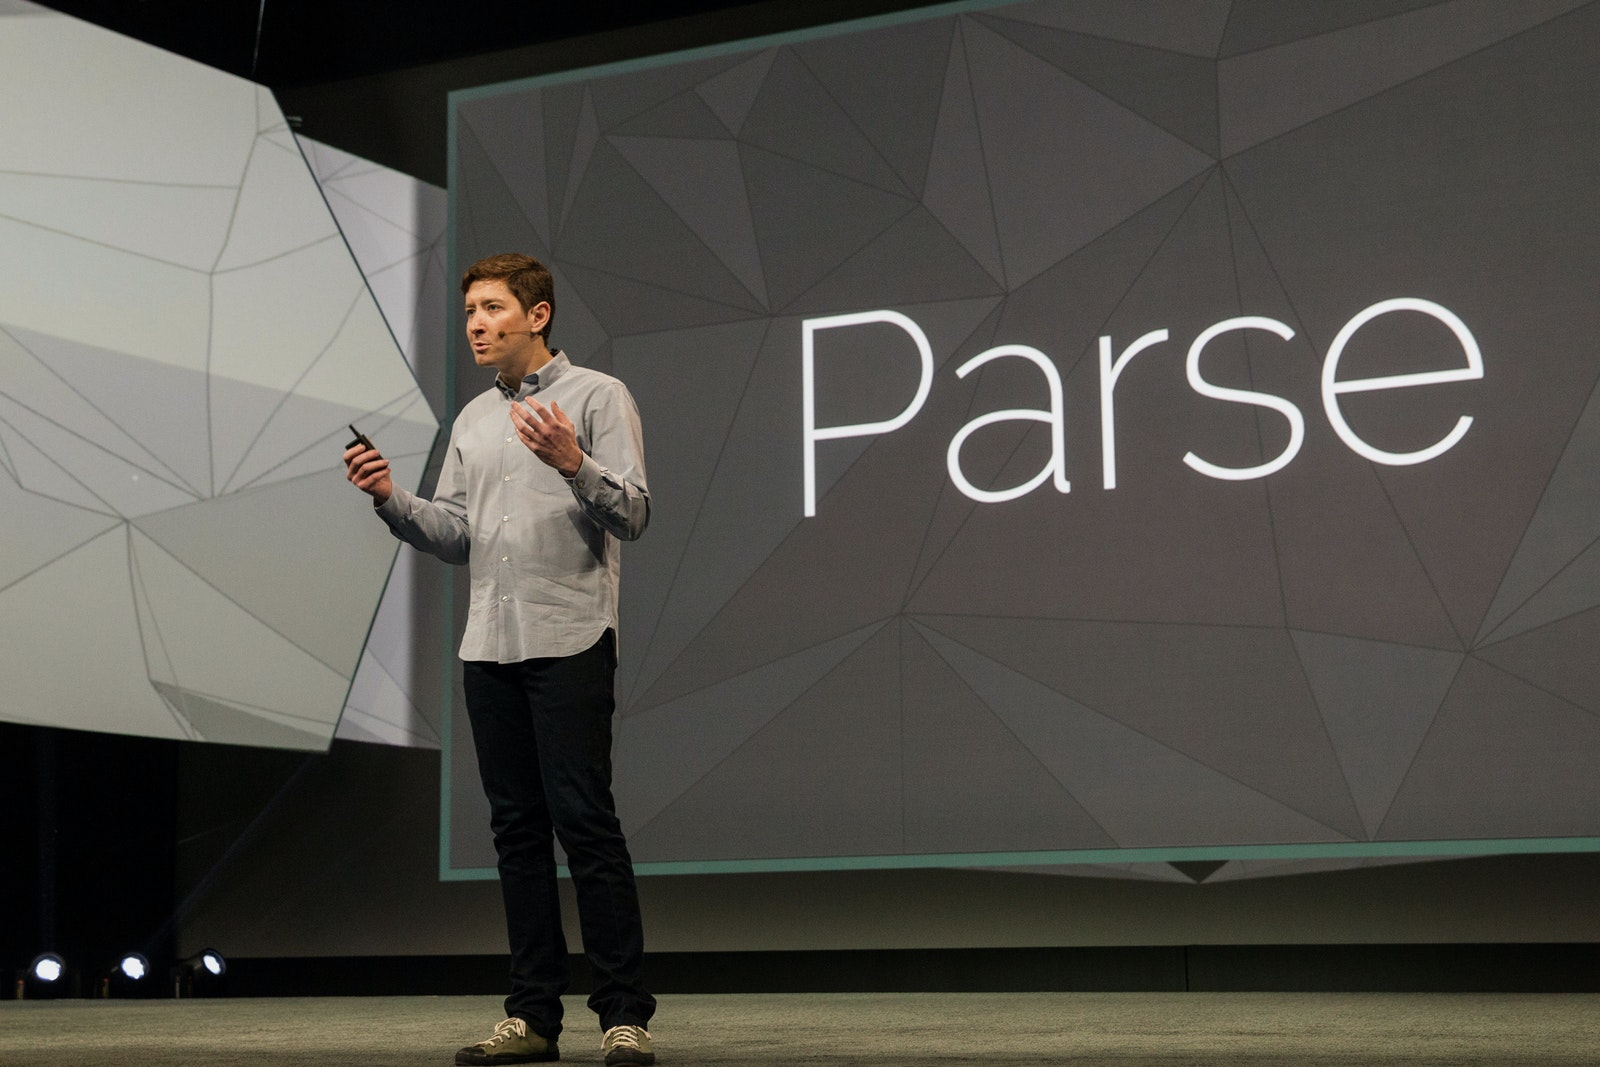 Parse co-founder and Facebook executive Ilya Sukhar. Photo by Bloomberg.